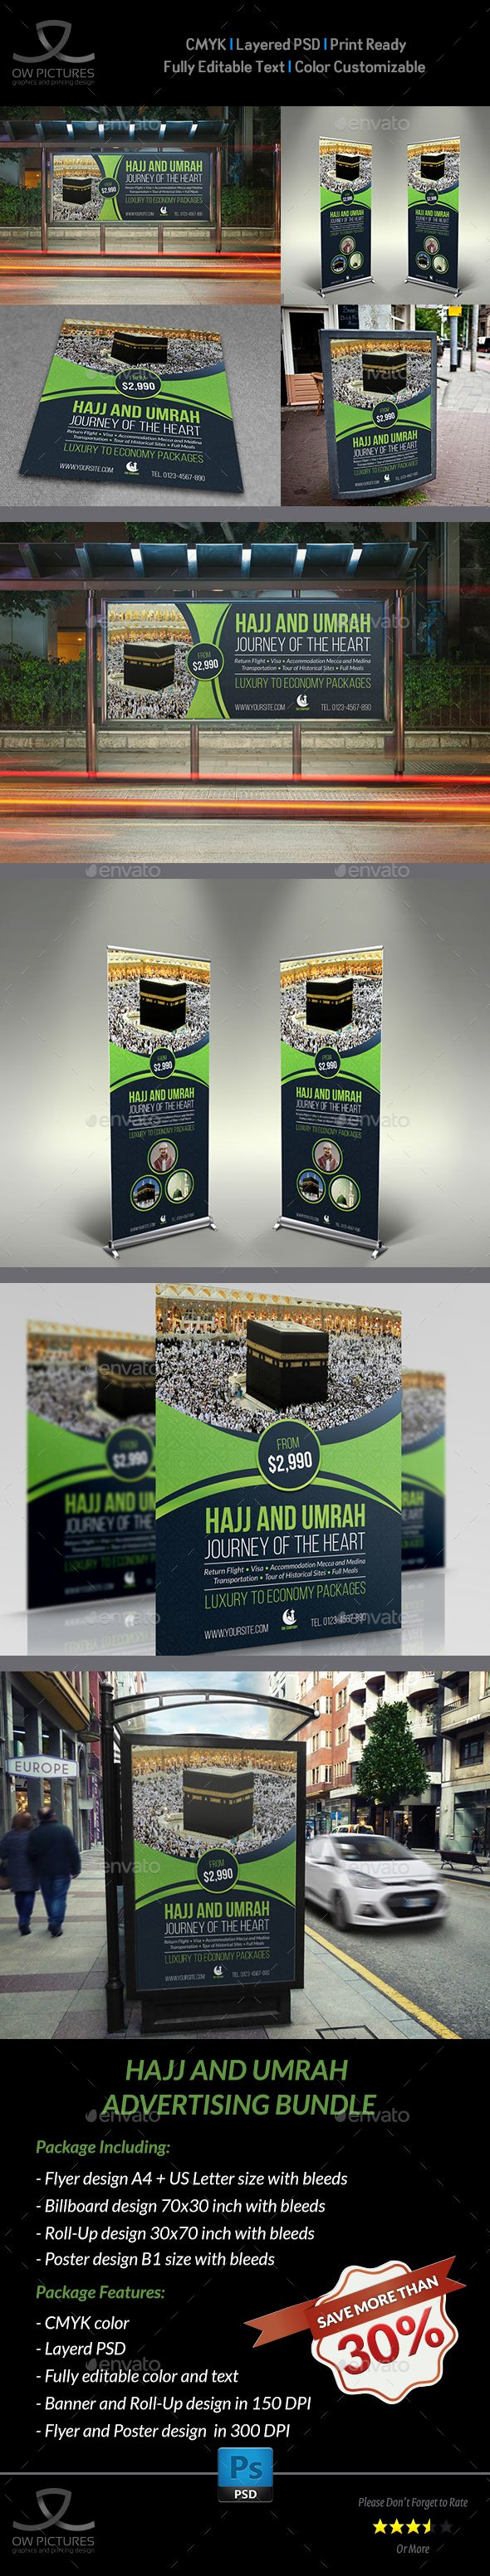 Umrah Banner: Hajj And Umrah Advertising Bundle - Template PSD